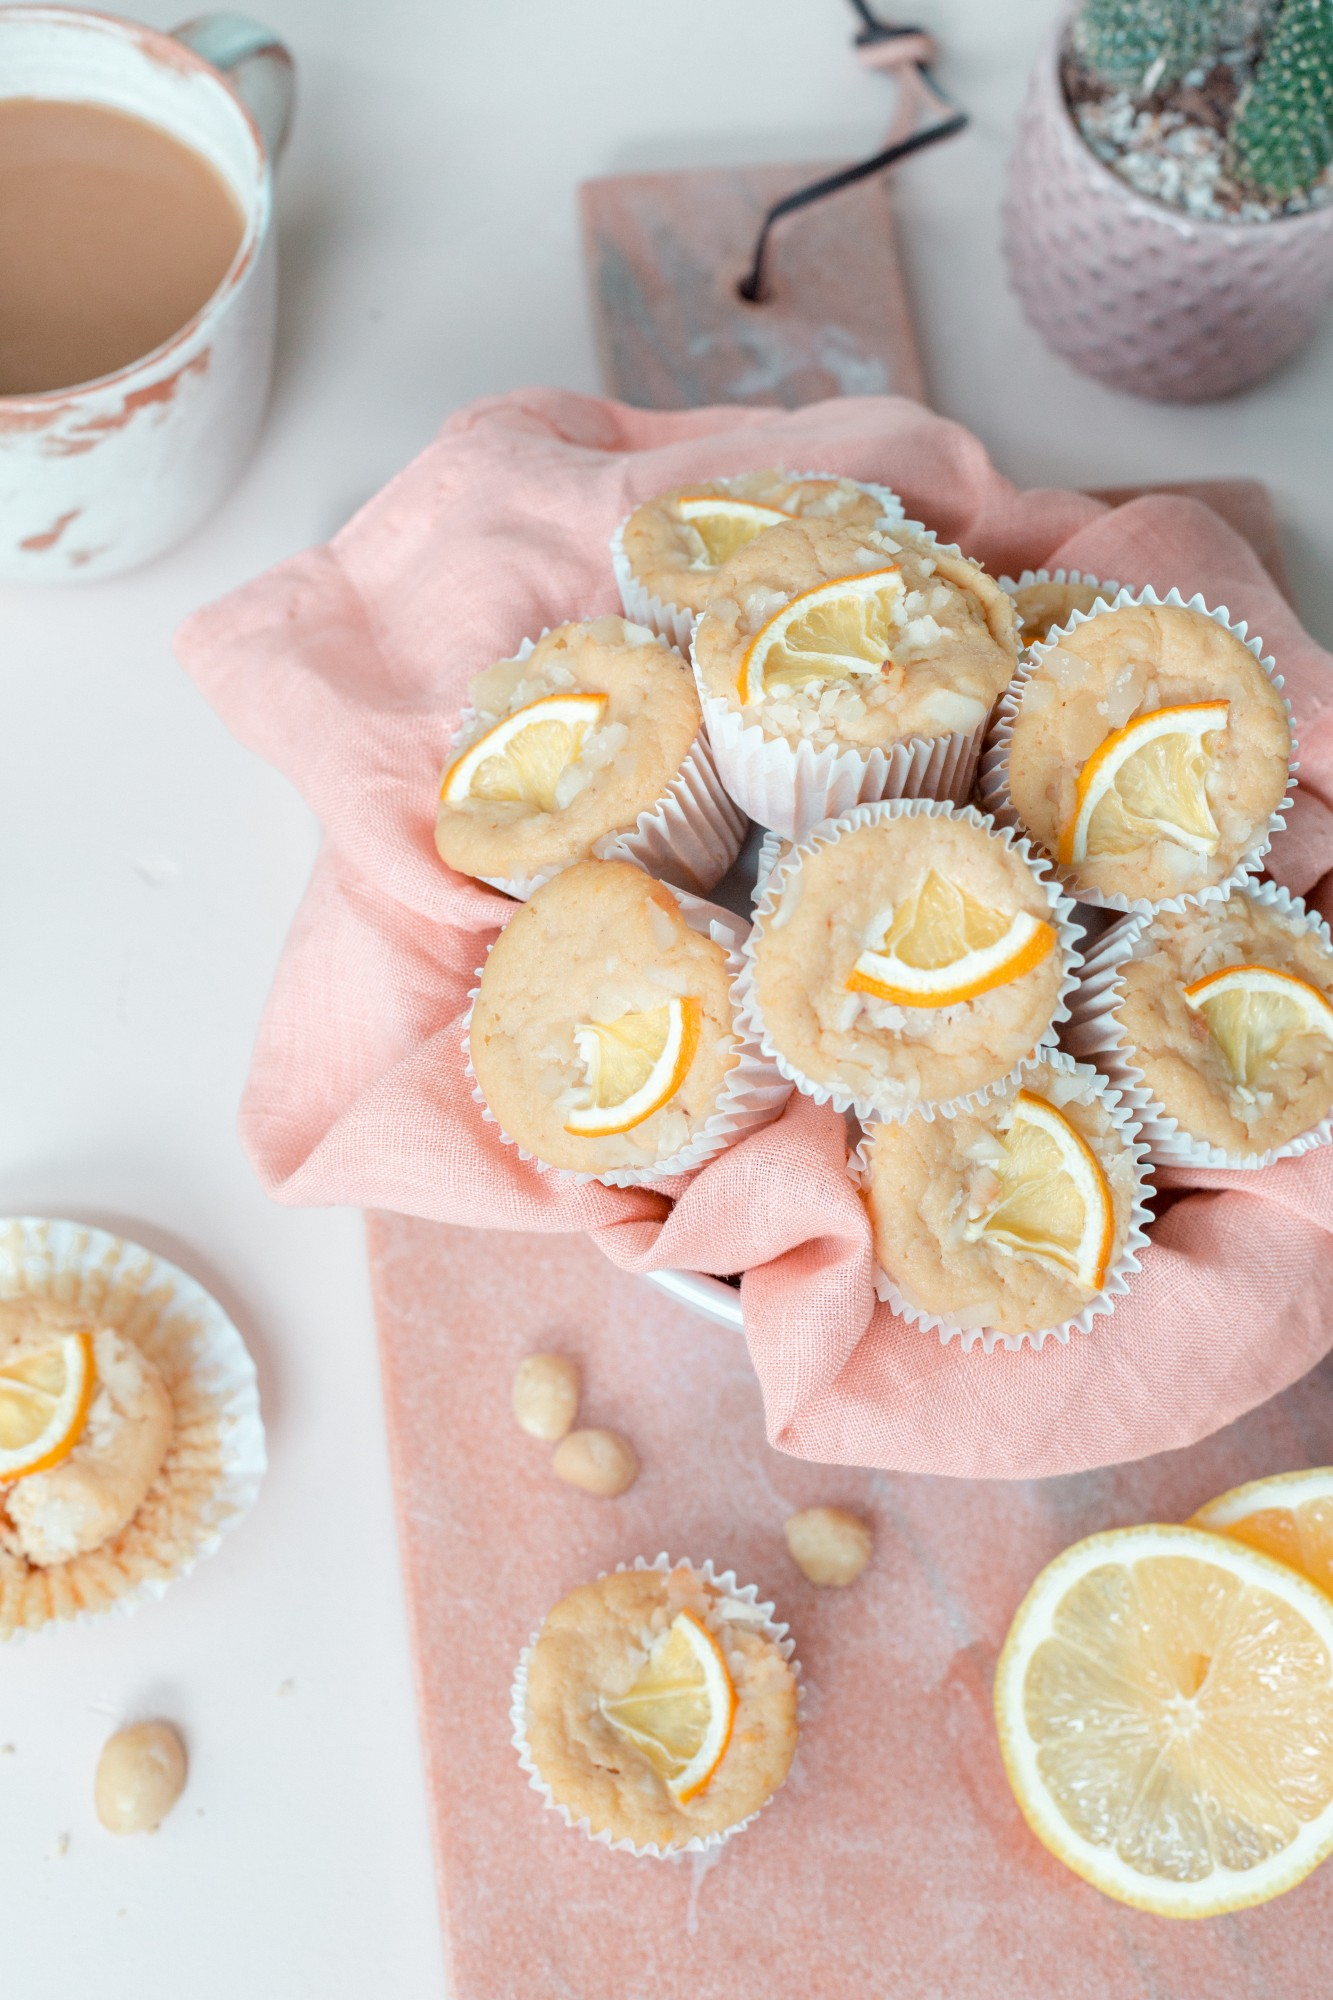 Try this healthy, easy, and delicious Lemon Macadamia Mini Muffin recipe.